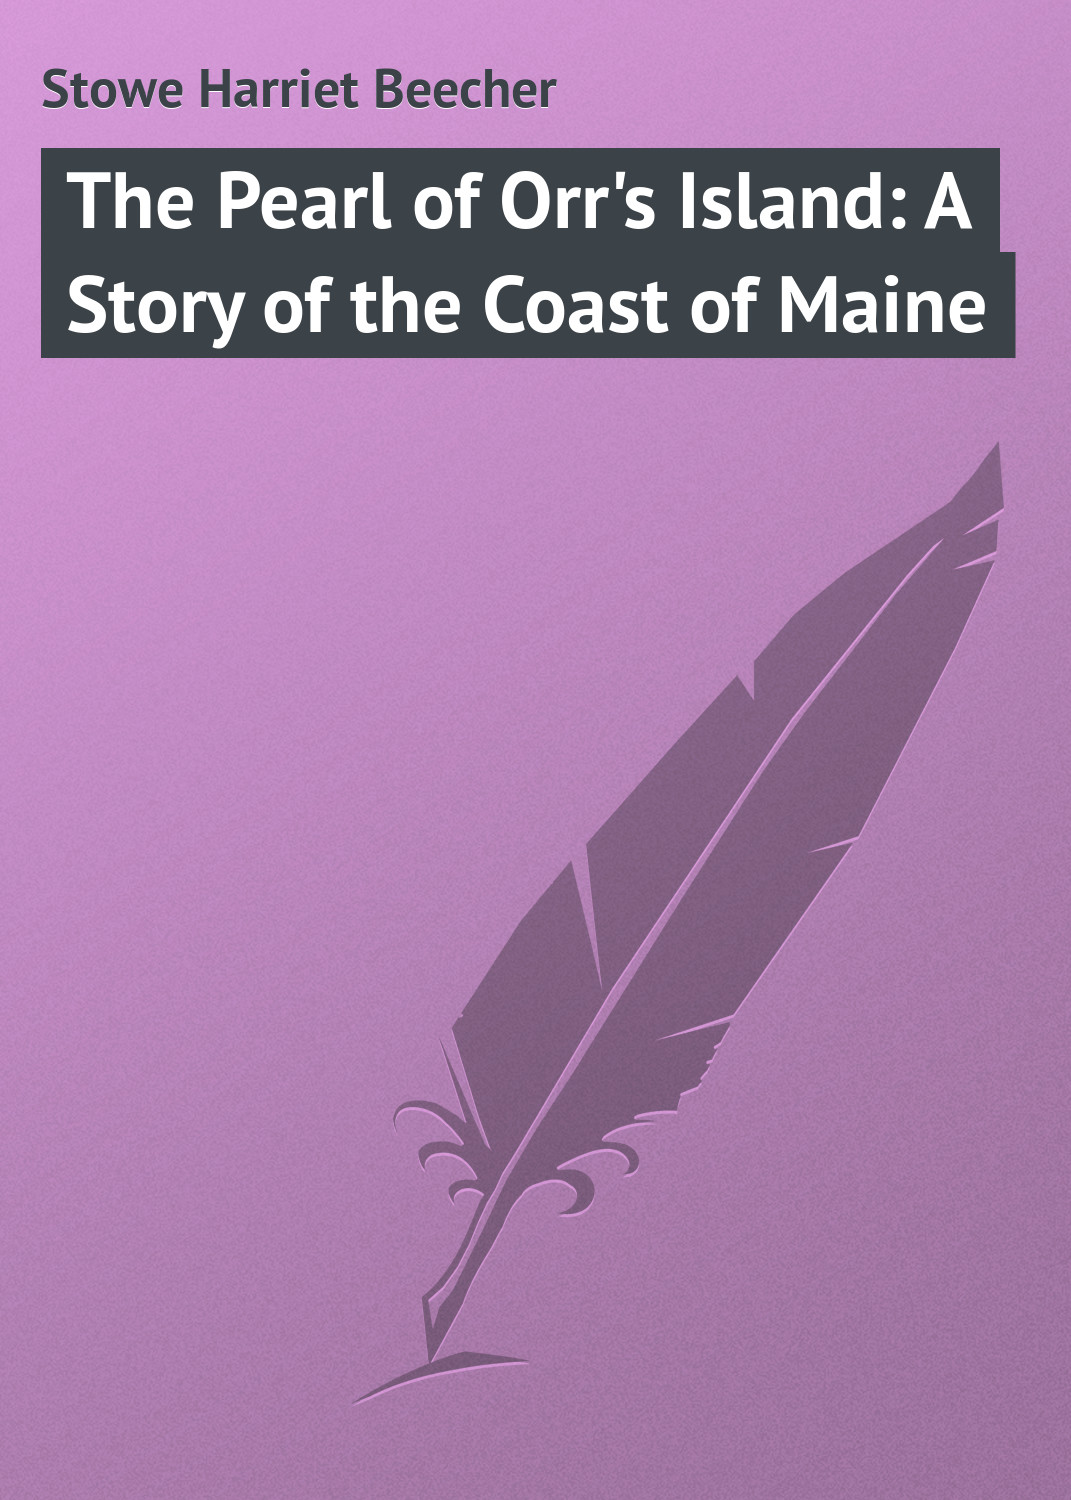 Гарриет Бичер-Стоу The Pearl of Orr's Island: A Story of the Coast of Maine muriel barbier the story of lingerie